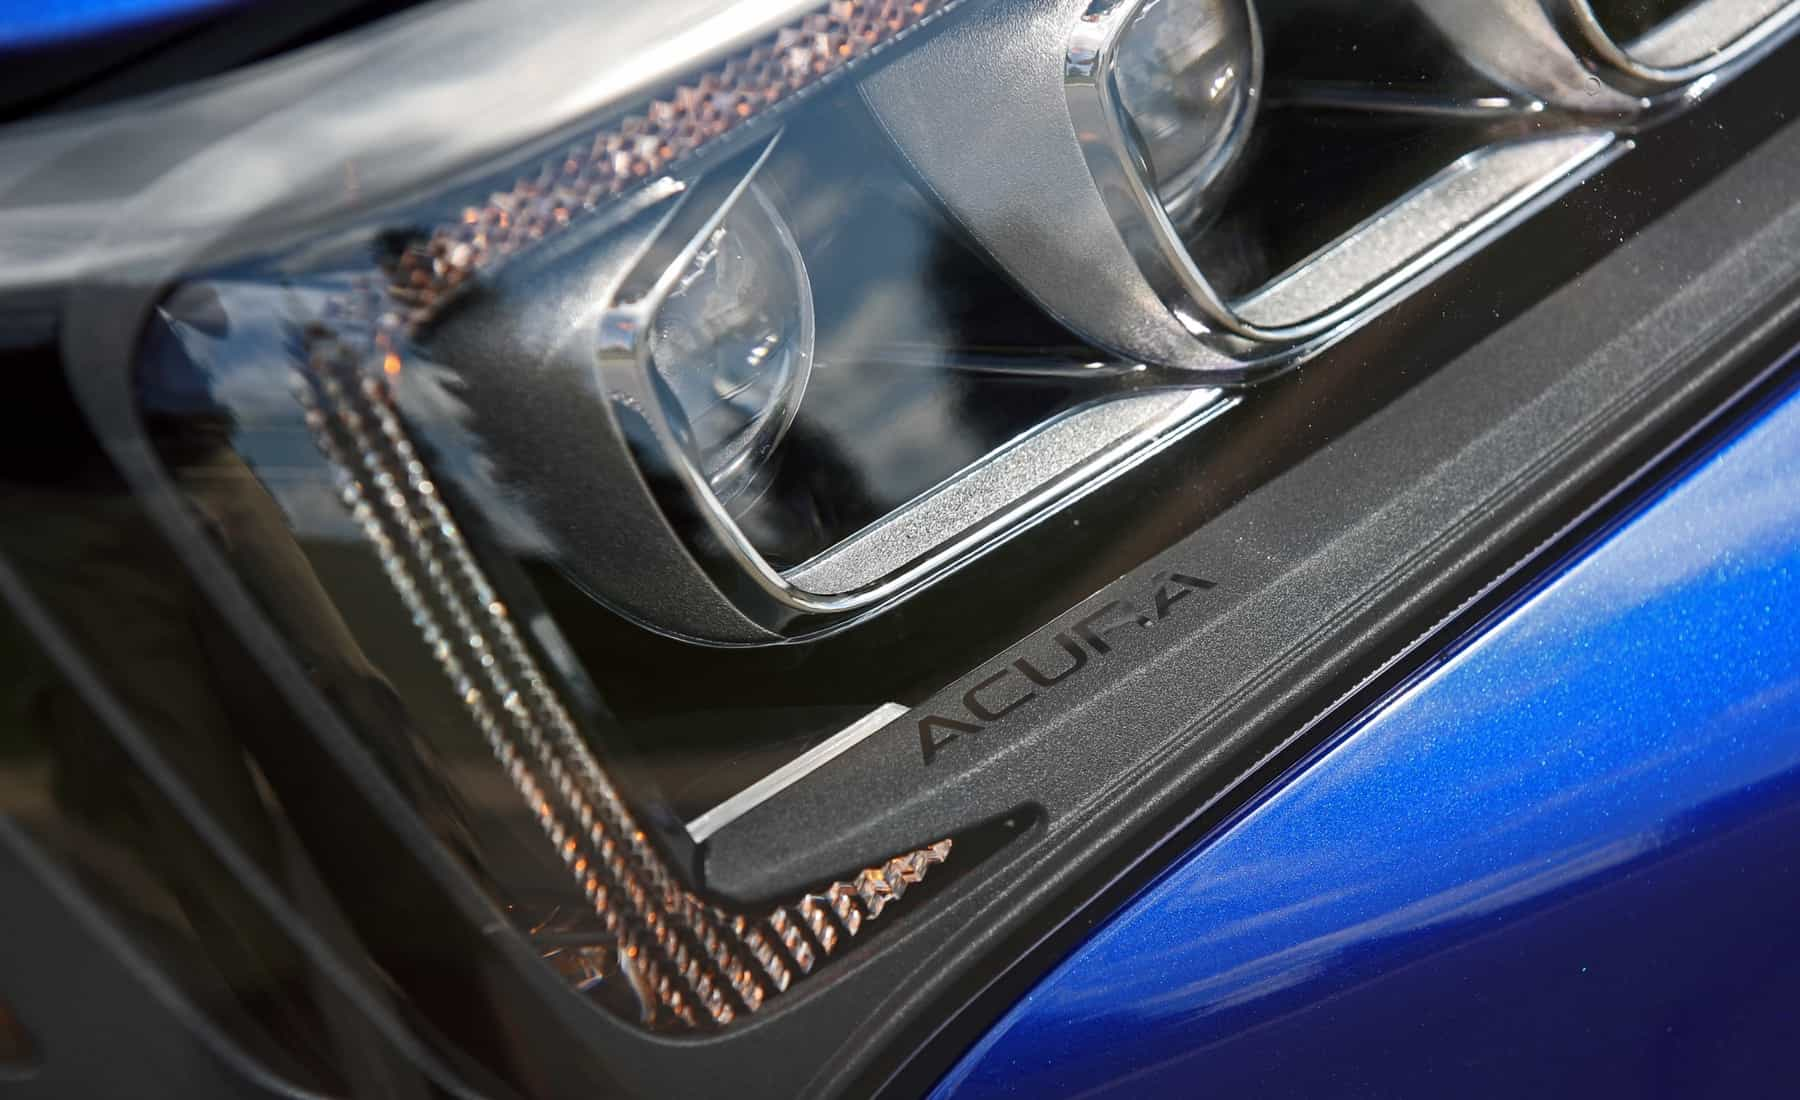 2018 Acura TLX Exterior View Headlight Projector (Photo 12 of 46)